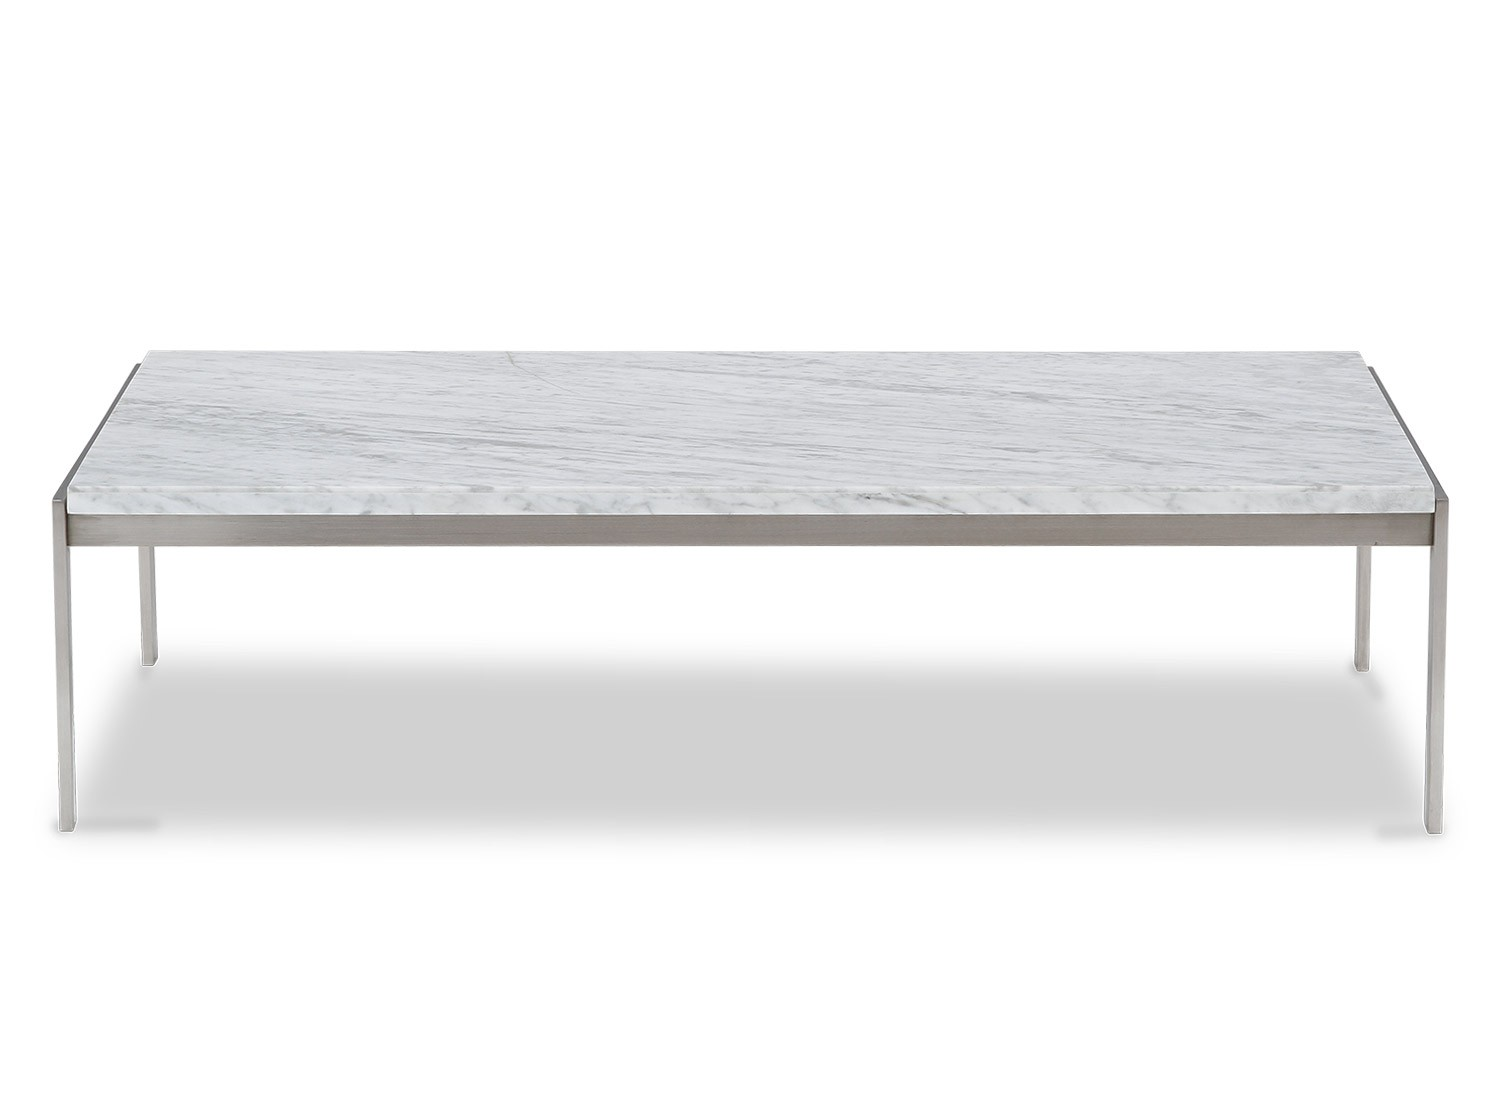 Pk63 marble top coffee table by poul kjaerholm replica Stone top coffee table